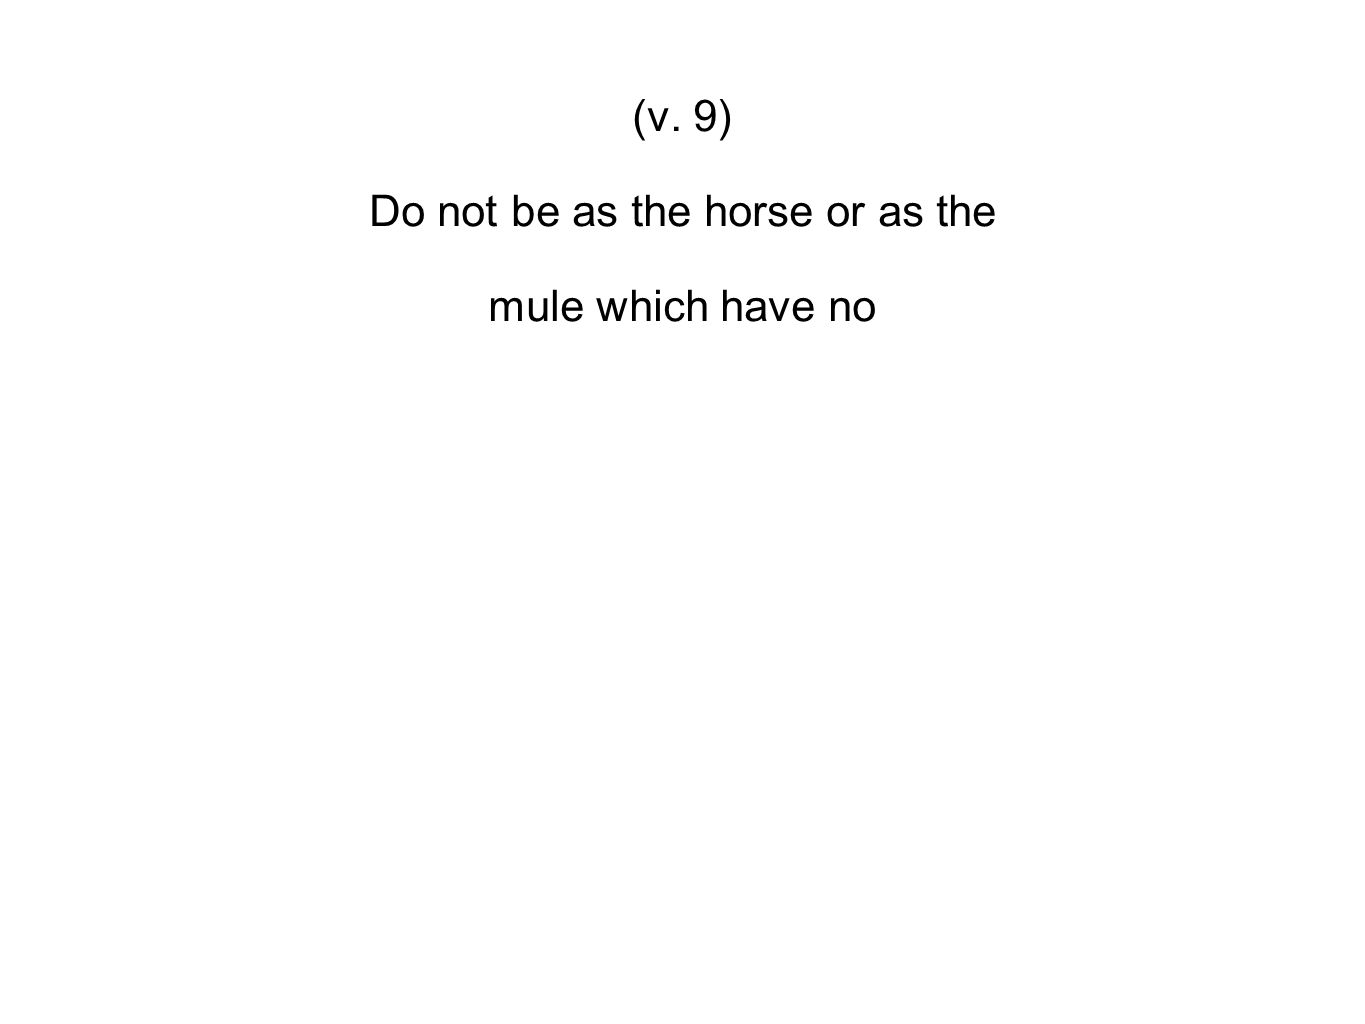 (v. 9) Do not be as the horse or as the mule which have no